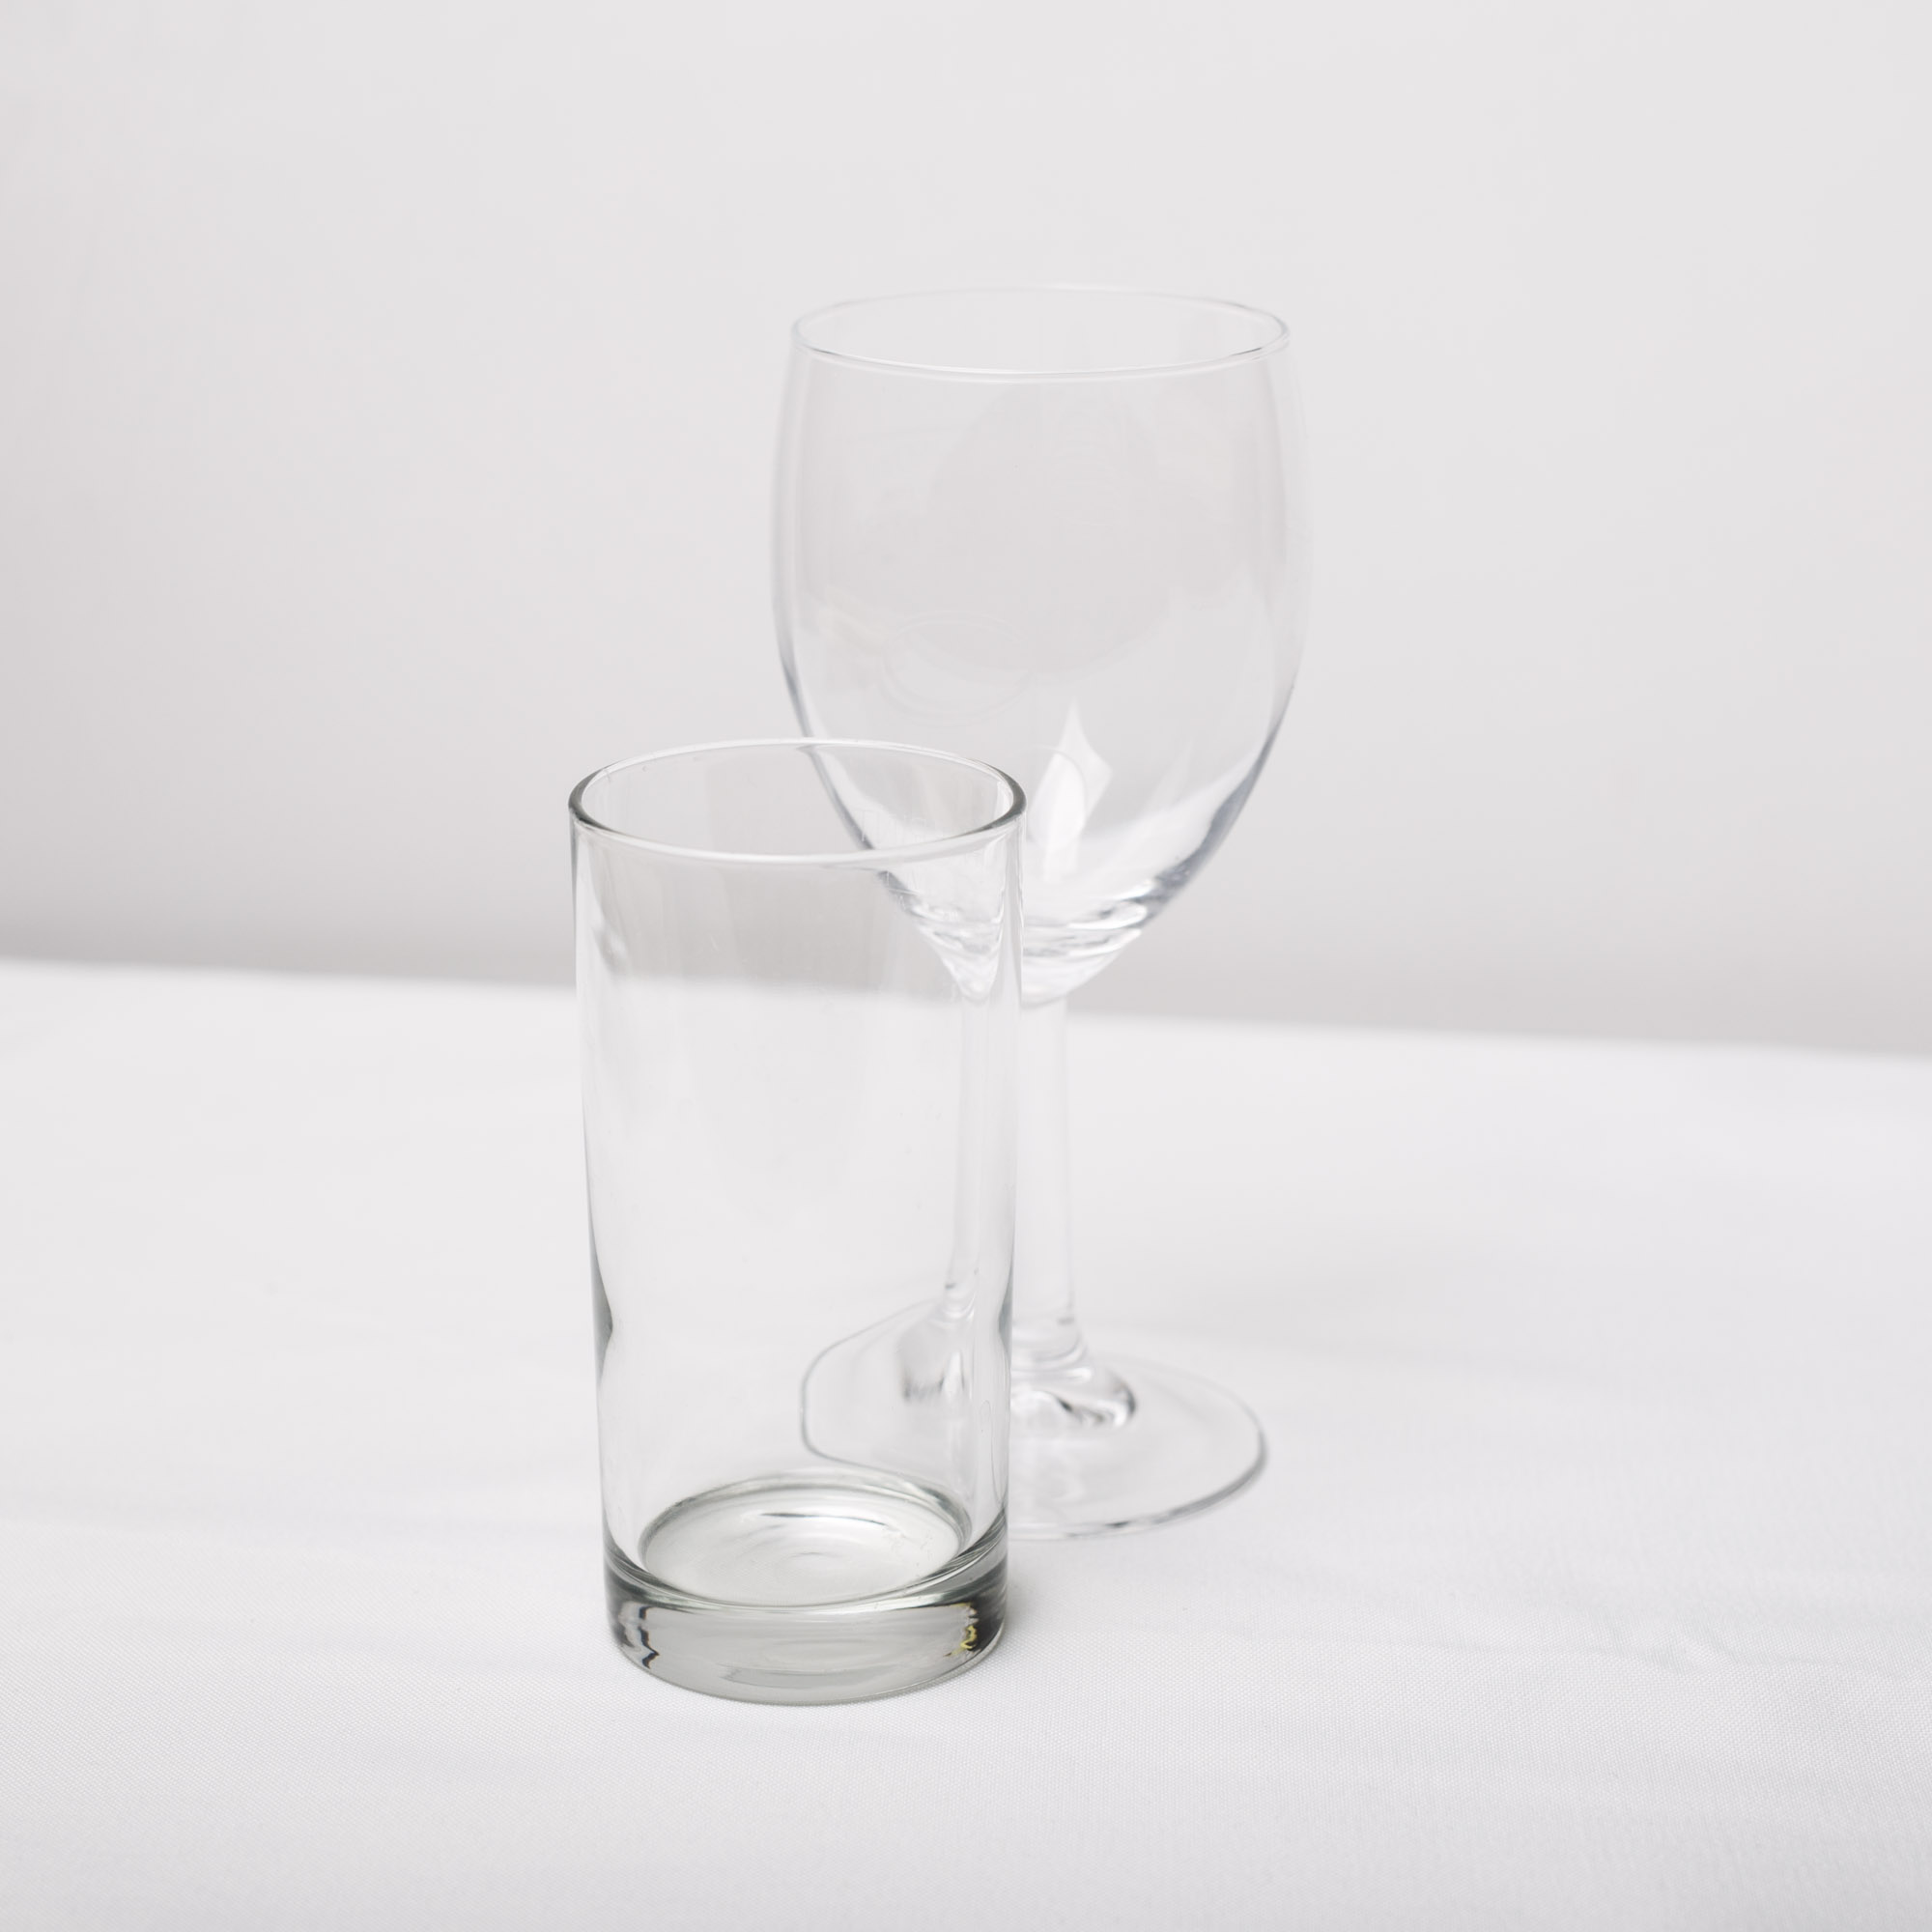 used wedding chair covers for sale uk revolving old highball glass 284ml / half pint - beyond expectations weddings & events